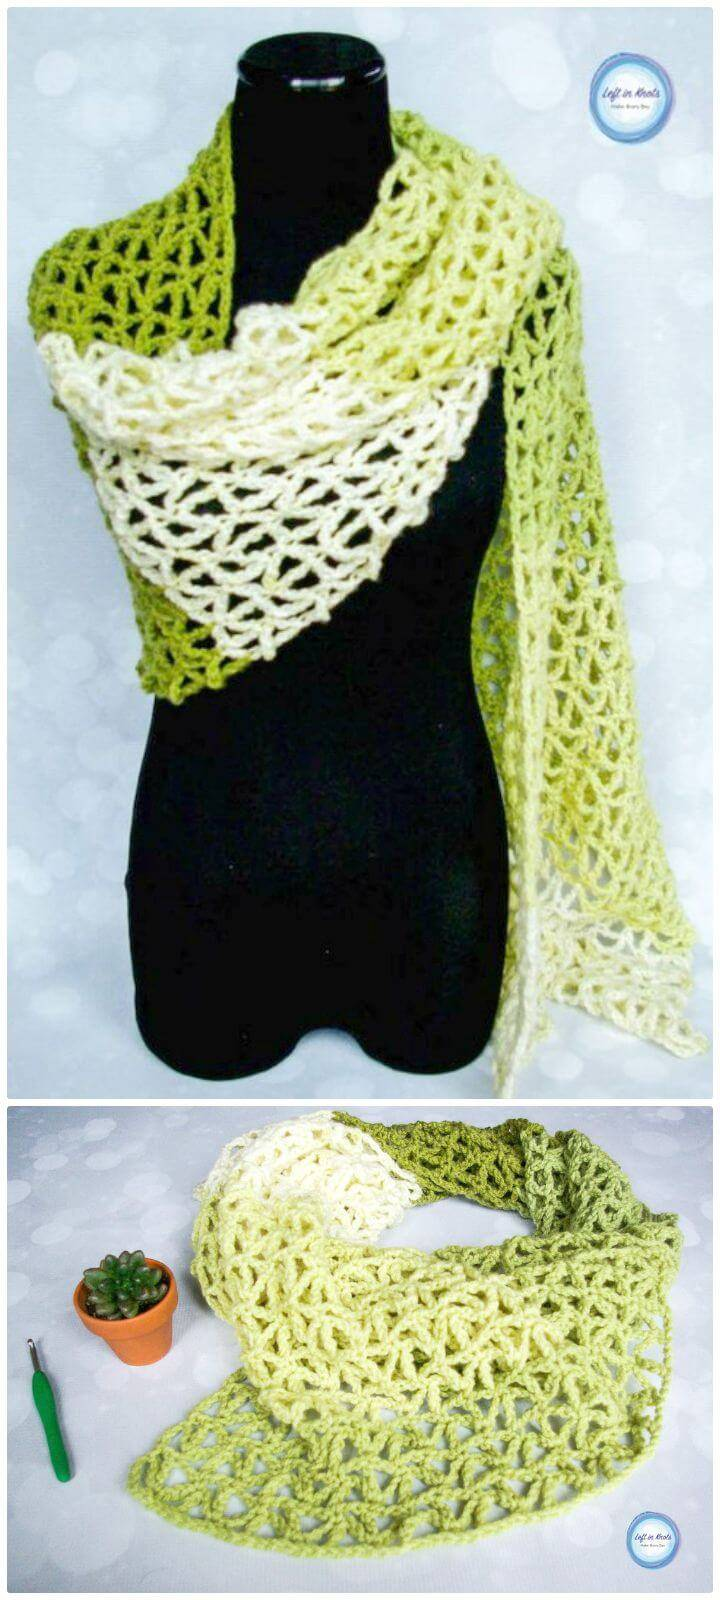 How To Free Crochet Greenery Wrap Pattern - Caron Cakes Yarn